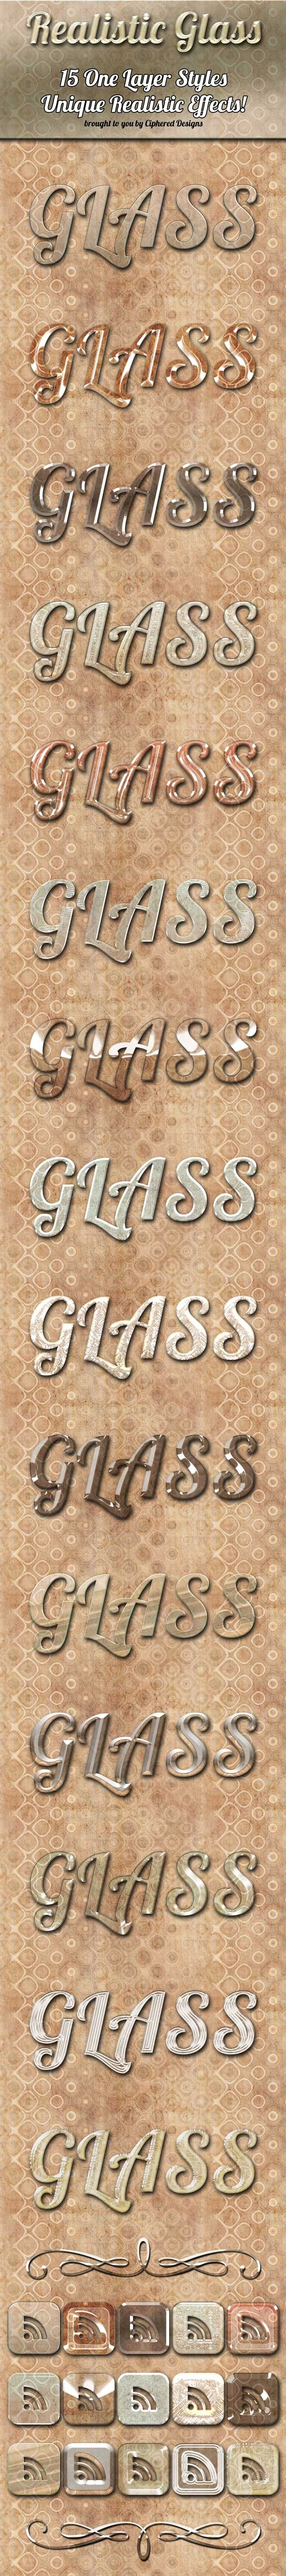 Realistic Glass - Photoshop Styles - Text Effects Styles